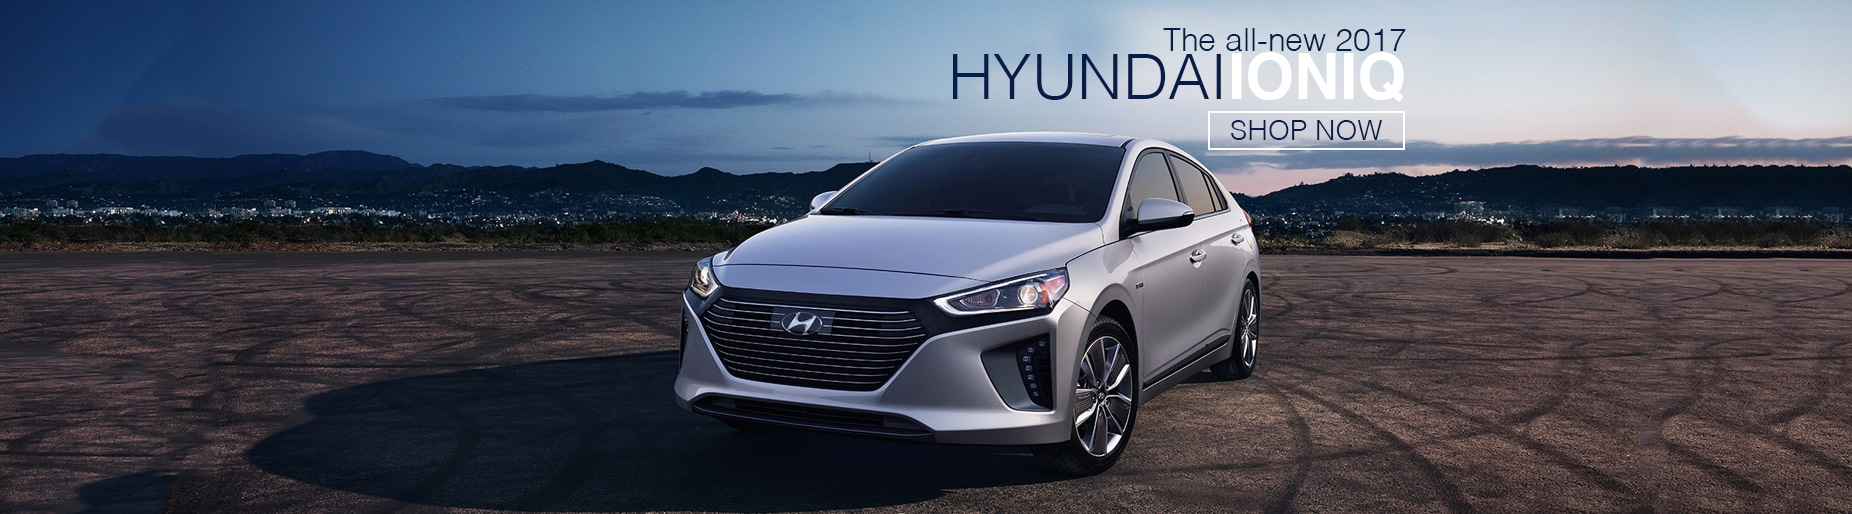 Hyundai Wesley Chapel >> All New 2017 Ioniq Hybrid | Hyundai Ioniq for Sale